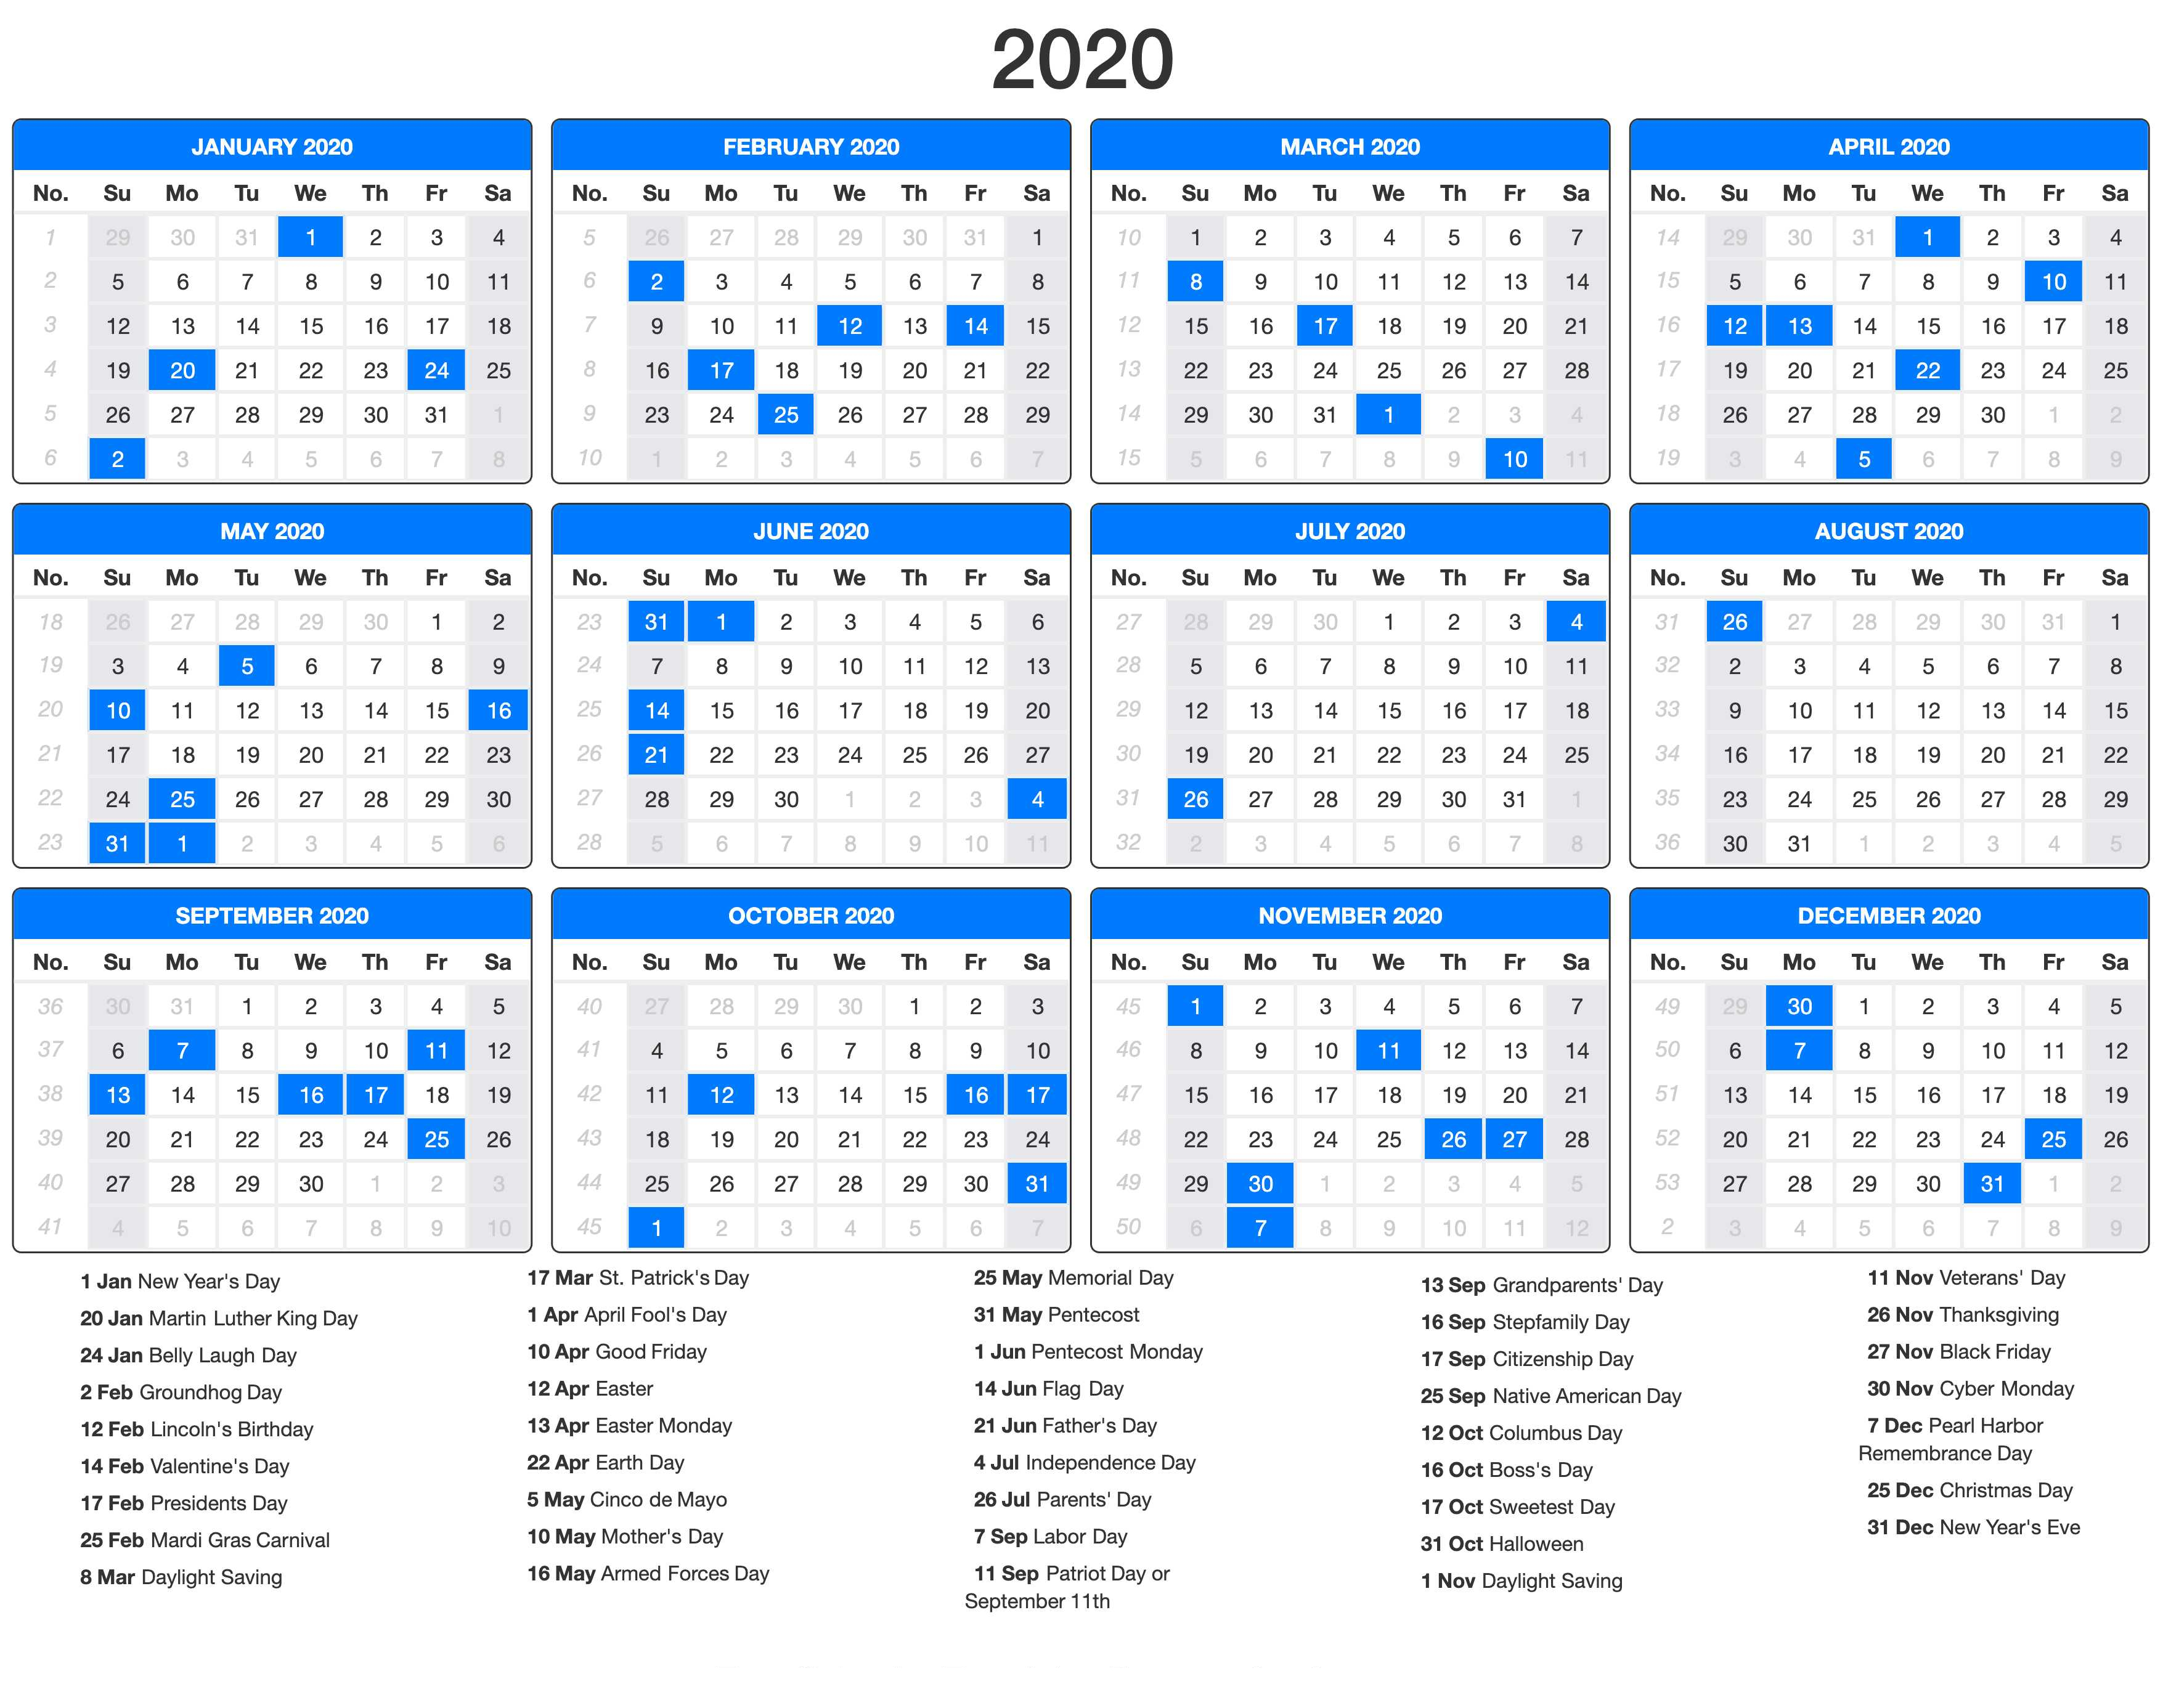 Free Printable Calendar 2020 With Holidays | 12 Month throughout 2020 Yearly Calendar With Holidays Printable